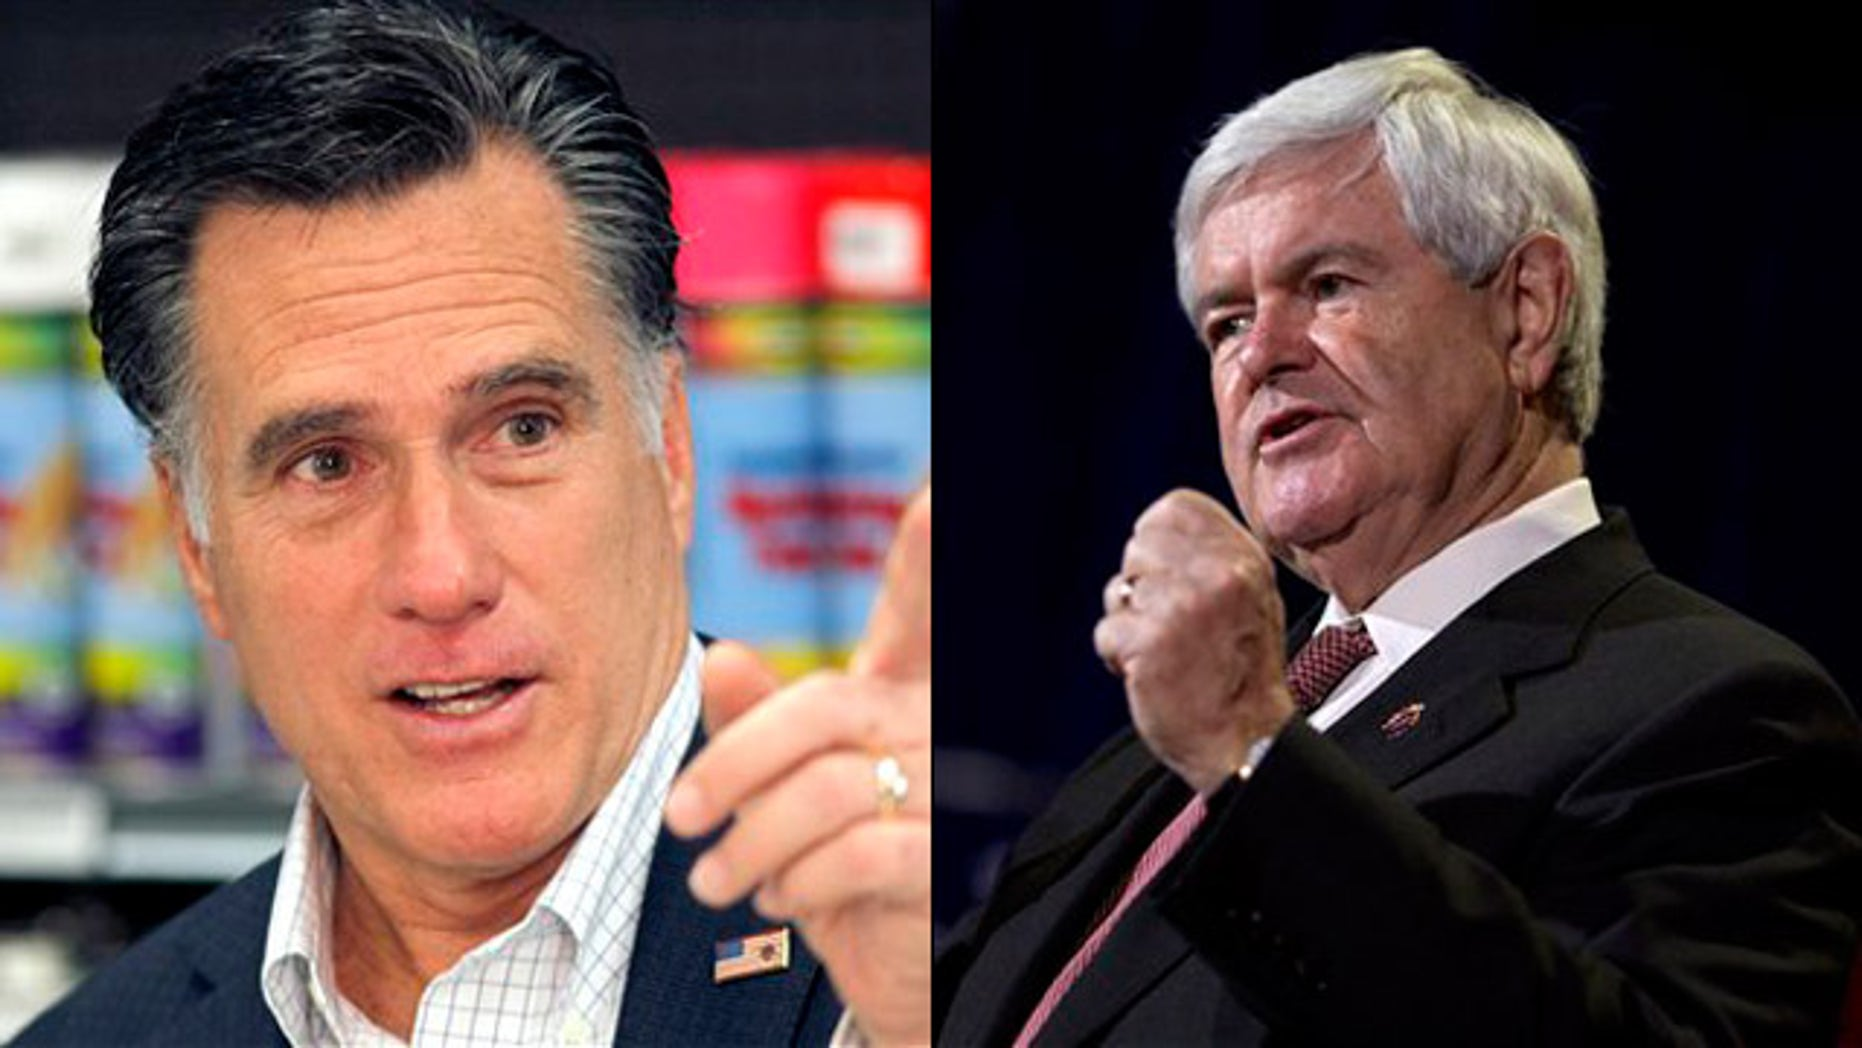 Feb. 3, 2012: Mitt Romney and Newt Gingrich campaign in Nevada ahead of the state's GOP presidential caucuses.